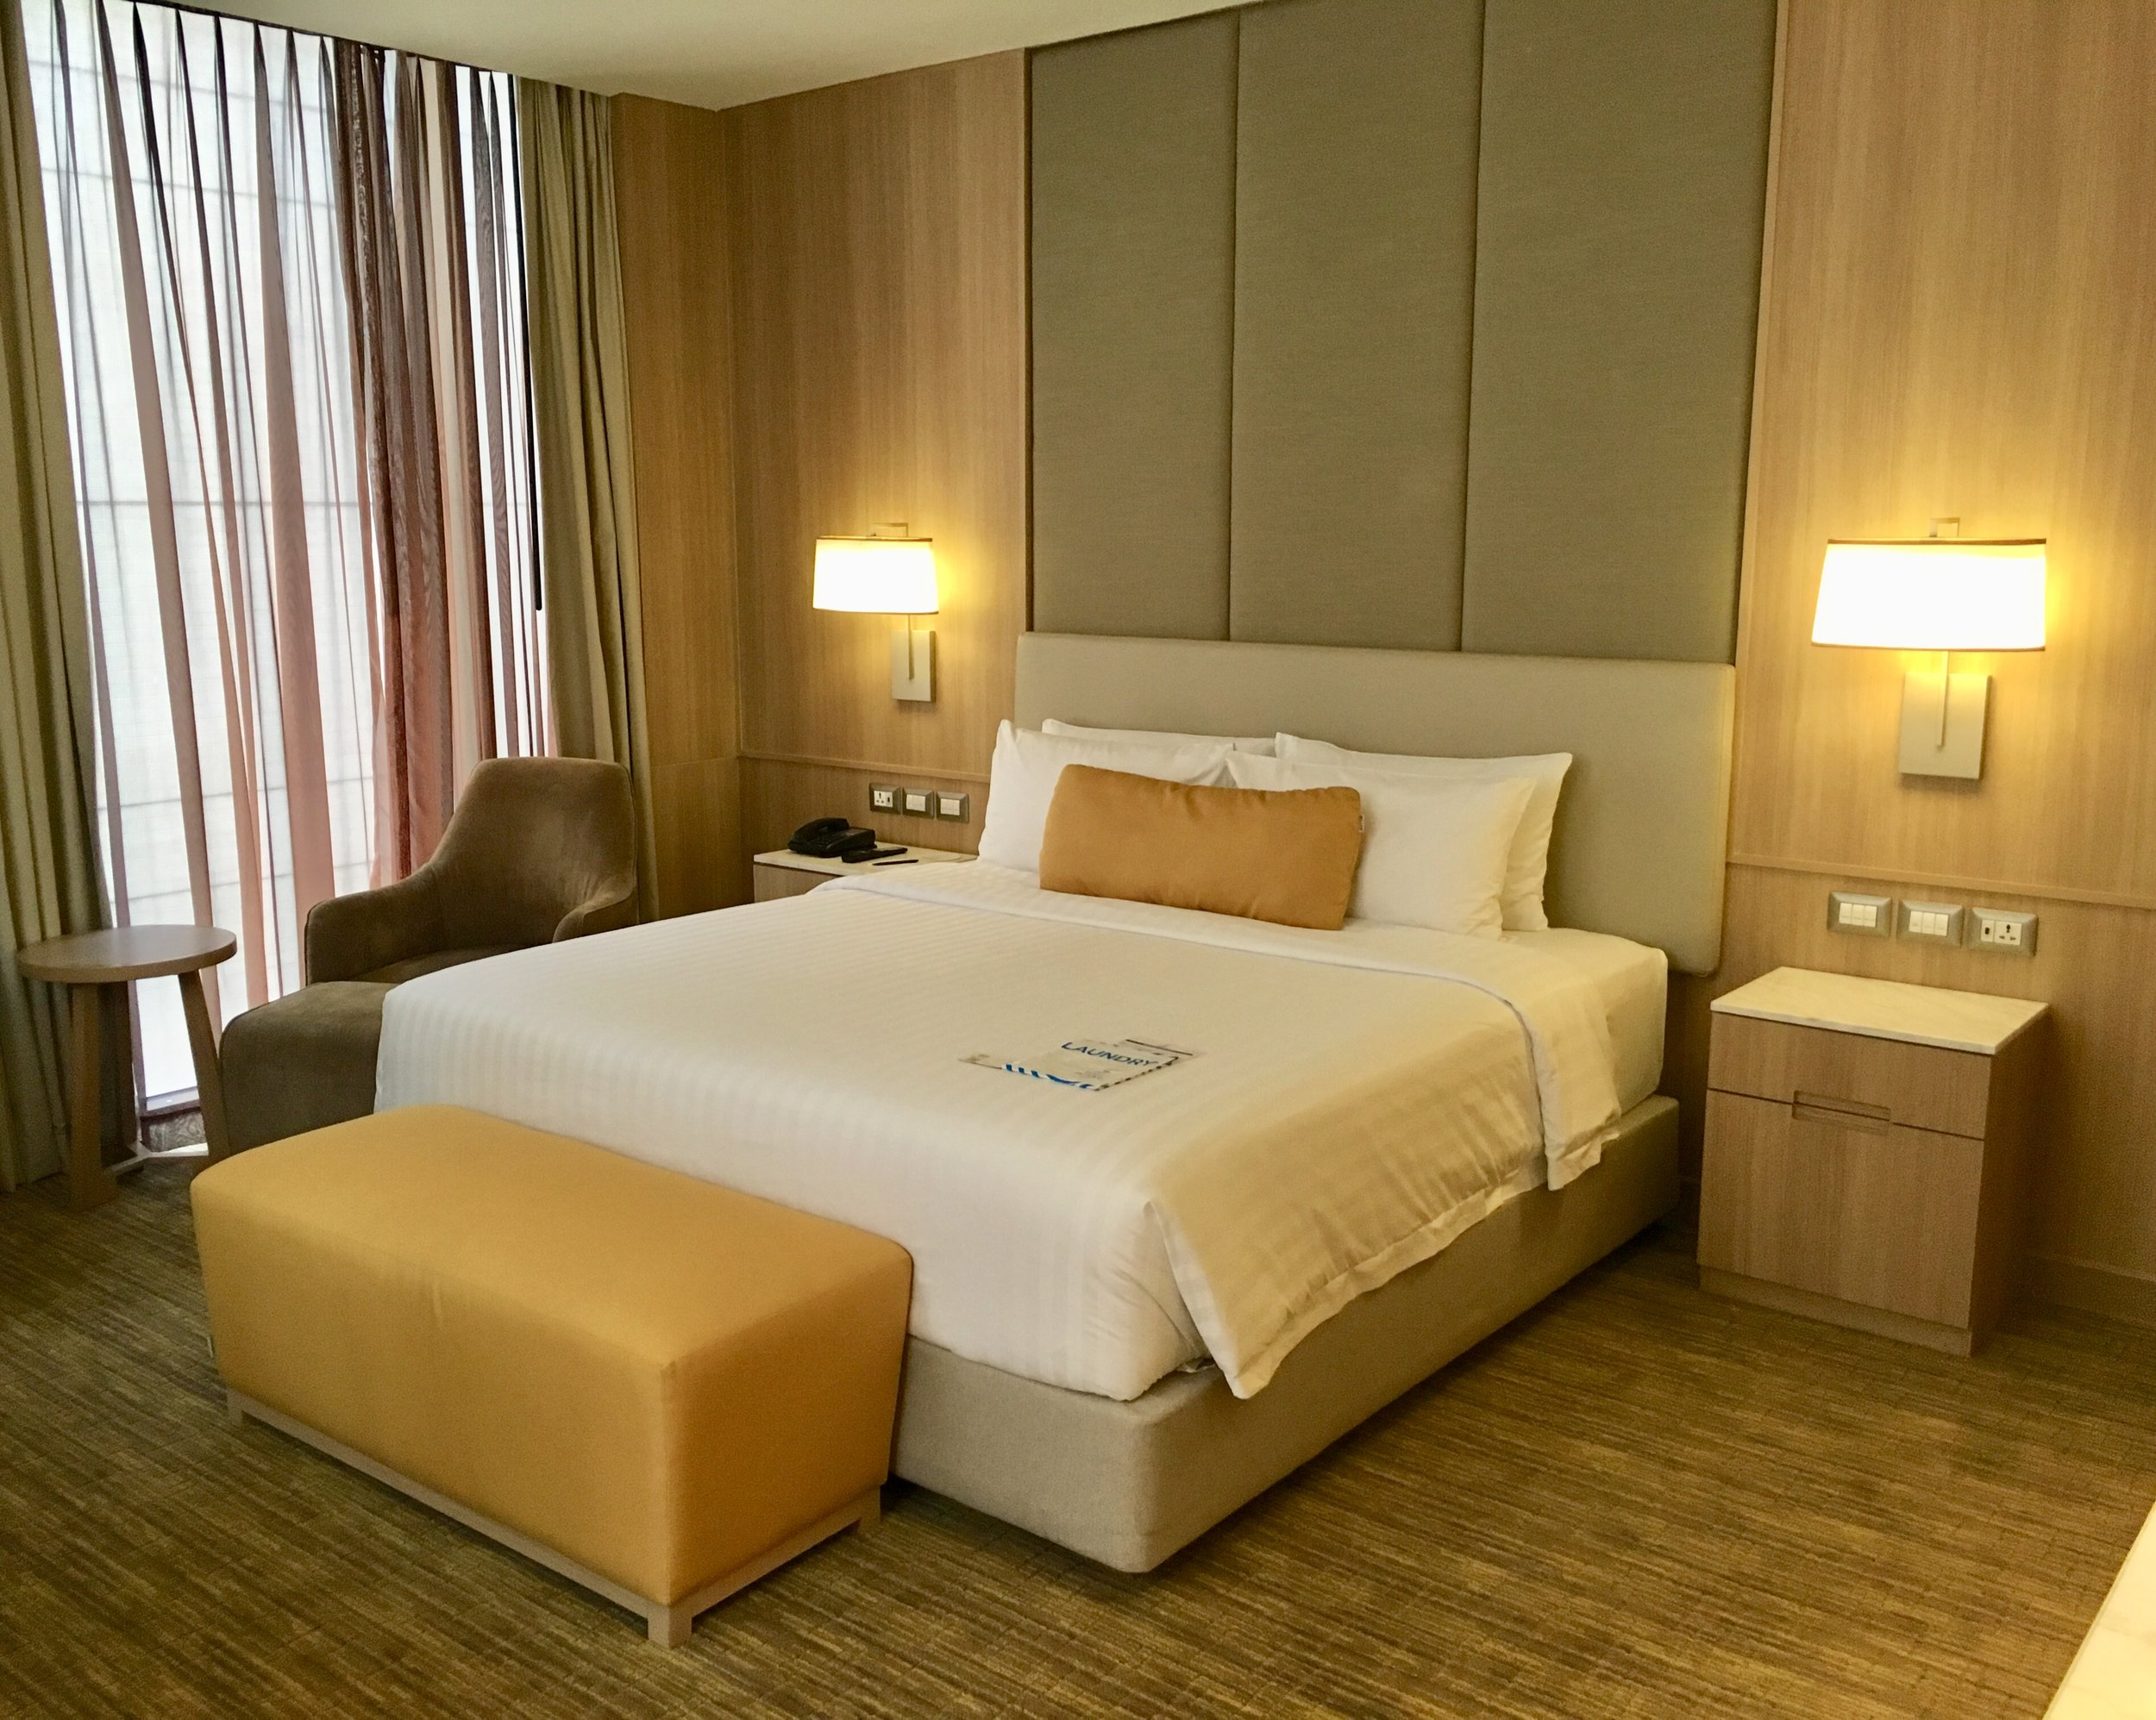 Very modern, clean, and comfortable executive corner room